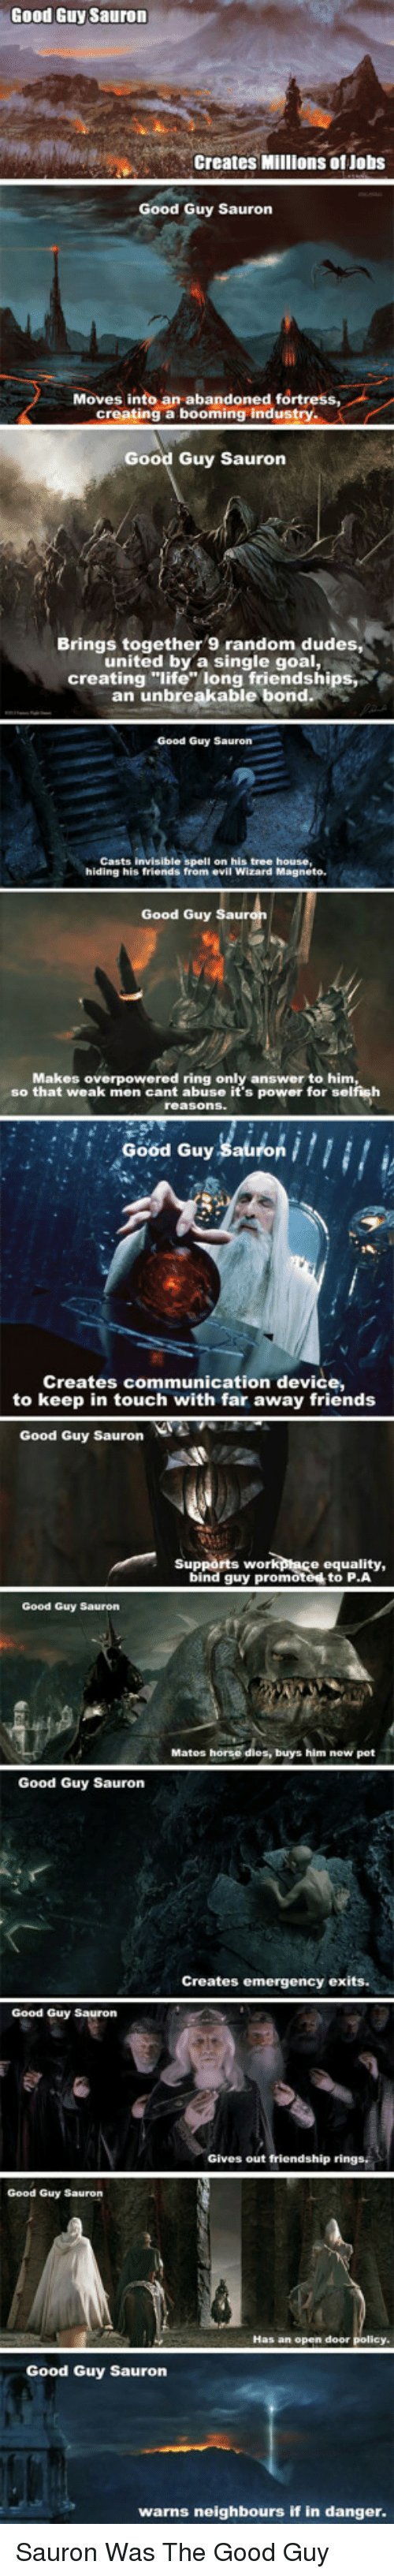 """the good guy: Good Guy Sauron  Creates Millions of Jobs  Good Guy Sauron  Moves into an abandoned fortress  creating a booming industry.  Good Guy Sauron  Brings together 9 random dudes,  united by a single goal,  creating """"life"""" long friendships  an unbreakable bond  Good Guy Sauron  Casts invisible spell on his tree house,  hiding his friends from evil Wizard Magneto  Good Guy  Makes overpowered ring only answer to him  so that weak men cant abuse it's power for selfish  reasons.  Good Guy Sal  Creates communication device,  to keep in touch with far away friends  Good Guy Sauron  Supports workpace equality,  bind guy promoted to P.A  Good Guy Sauron  Matos horse dies, buys him new pet  Good Guy Sauron  Creates emergency exits.  Good Guy Sauron  Gives out friendship rings,  Good Guy Sauron  Has an open door  Good Guy Sauron  warns neighbours if in danger <p>Sauron Was The Good Guy</p>"""